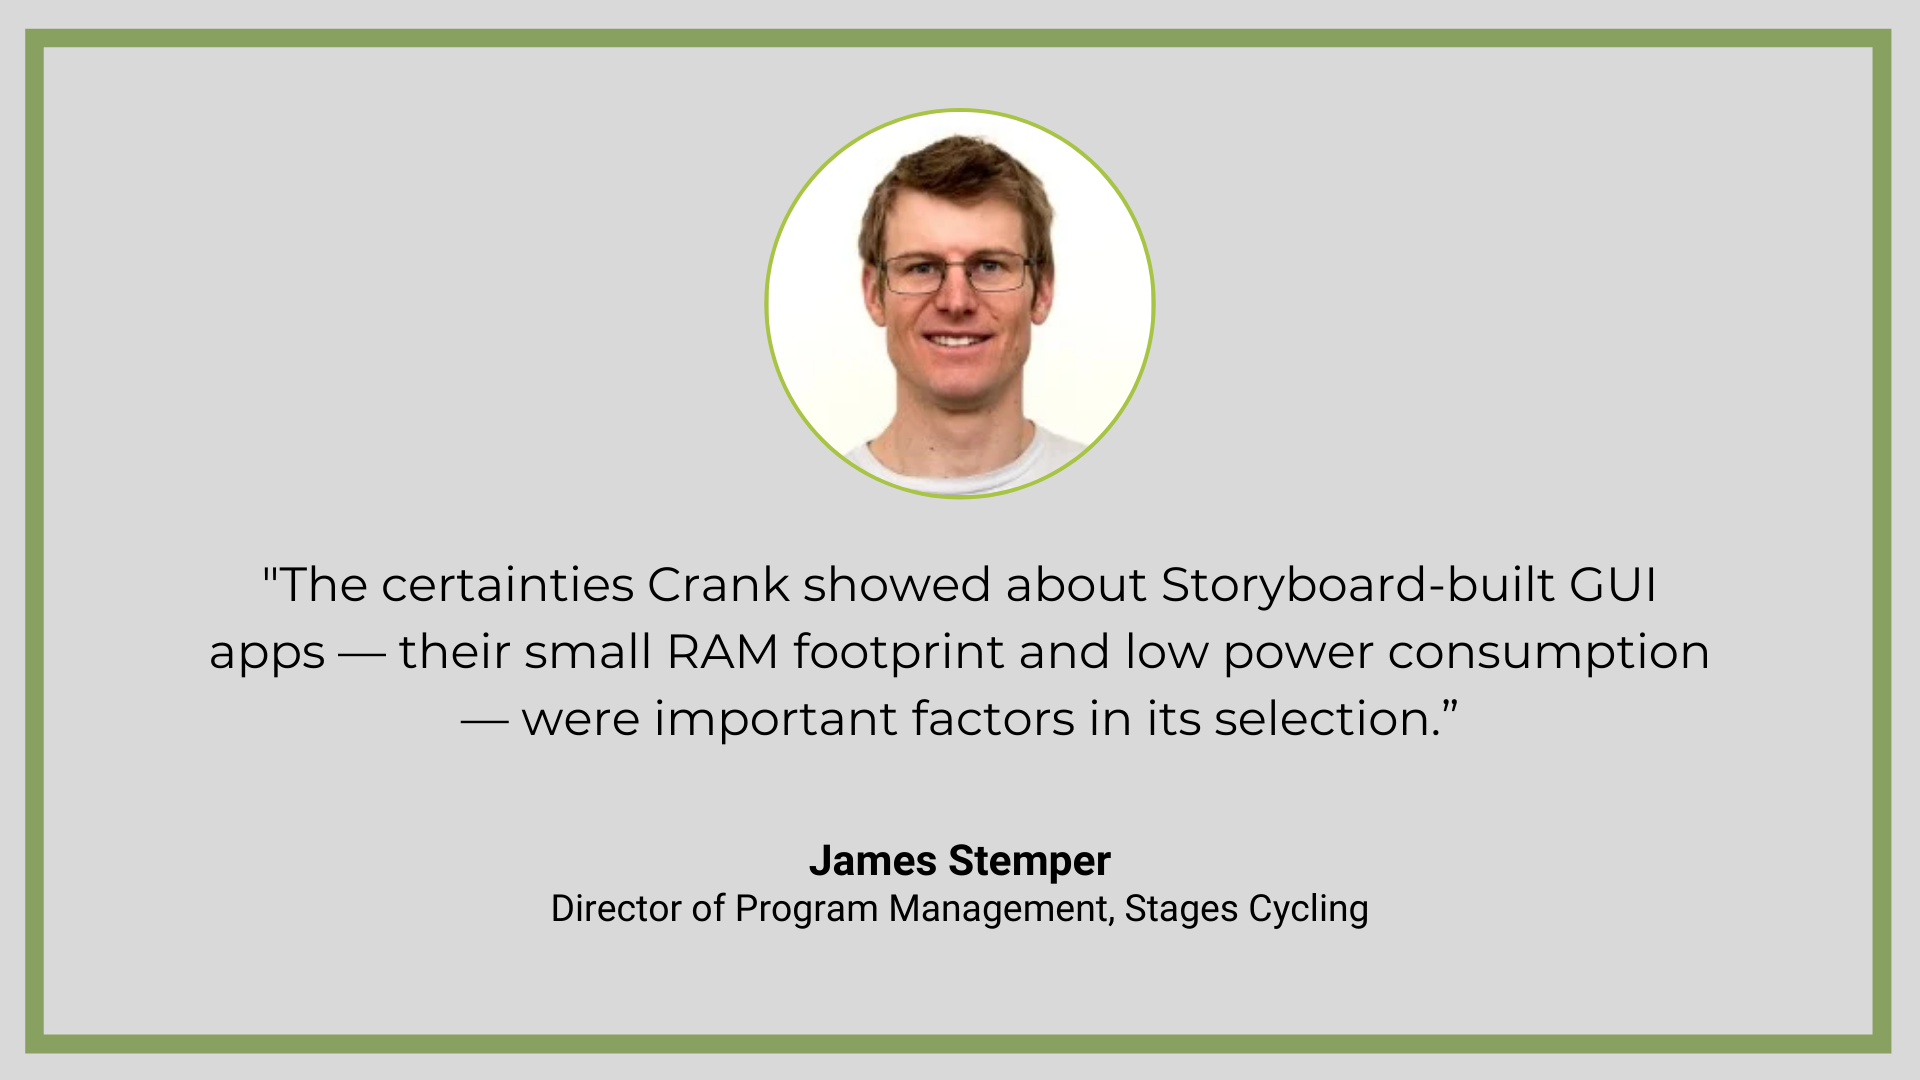 """Quote from Crank GUI services client, Stages Cycling: """"The certainties Crank showed about Storyboard-built GUI apps — their small RAM footprint and low power consumption — were important factors in its selection for the Dash."""""""